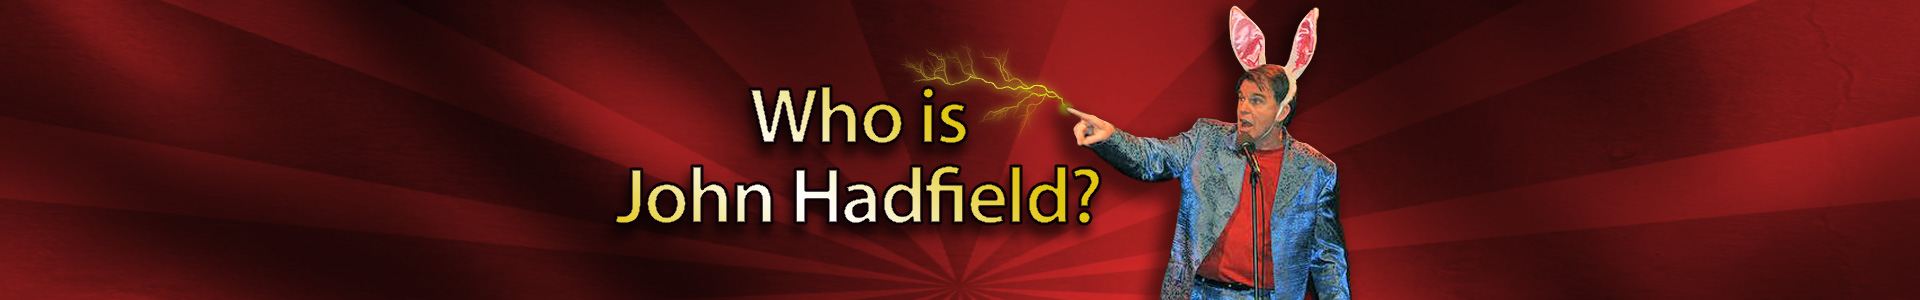 Meet John Hadfield